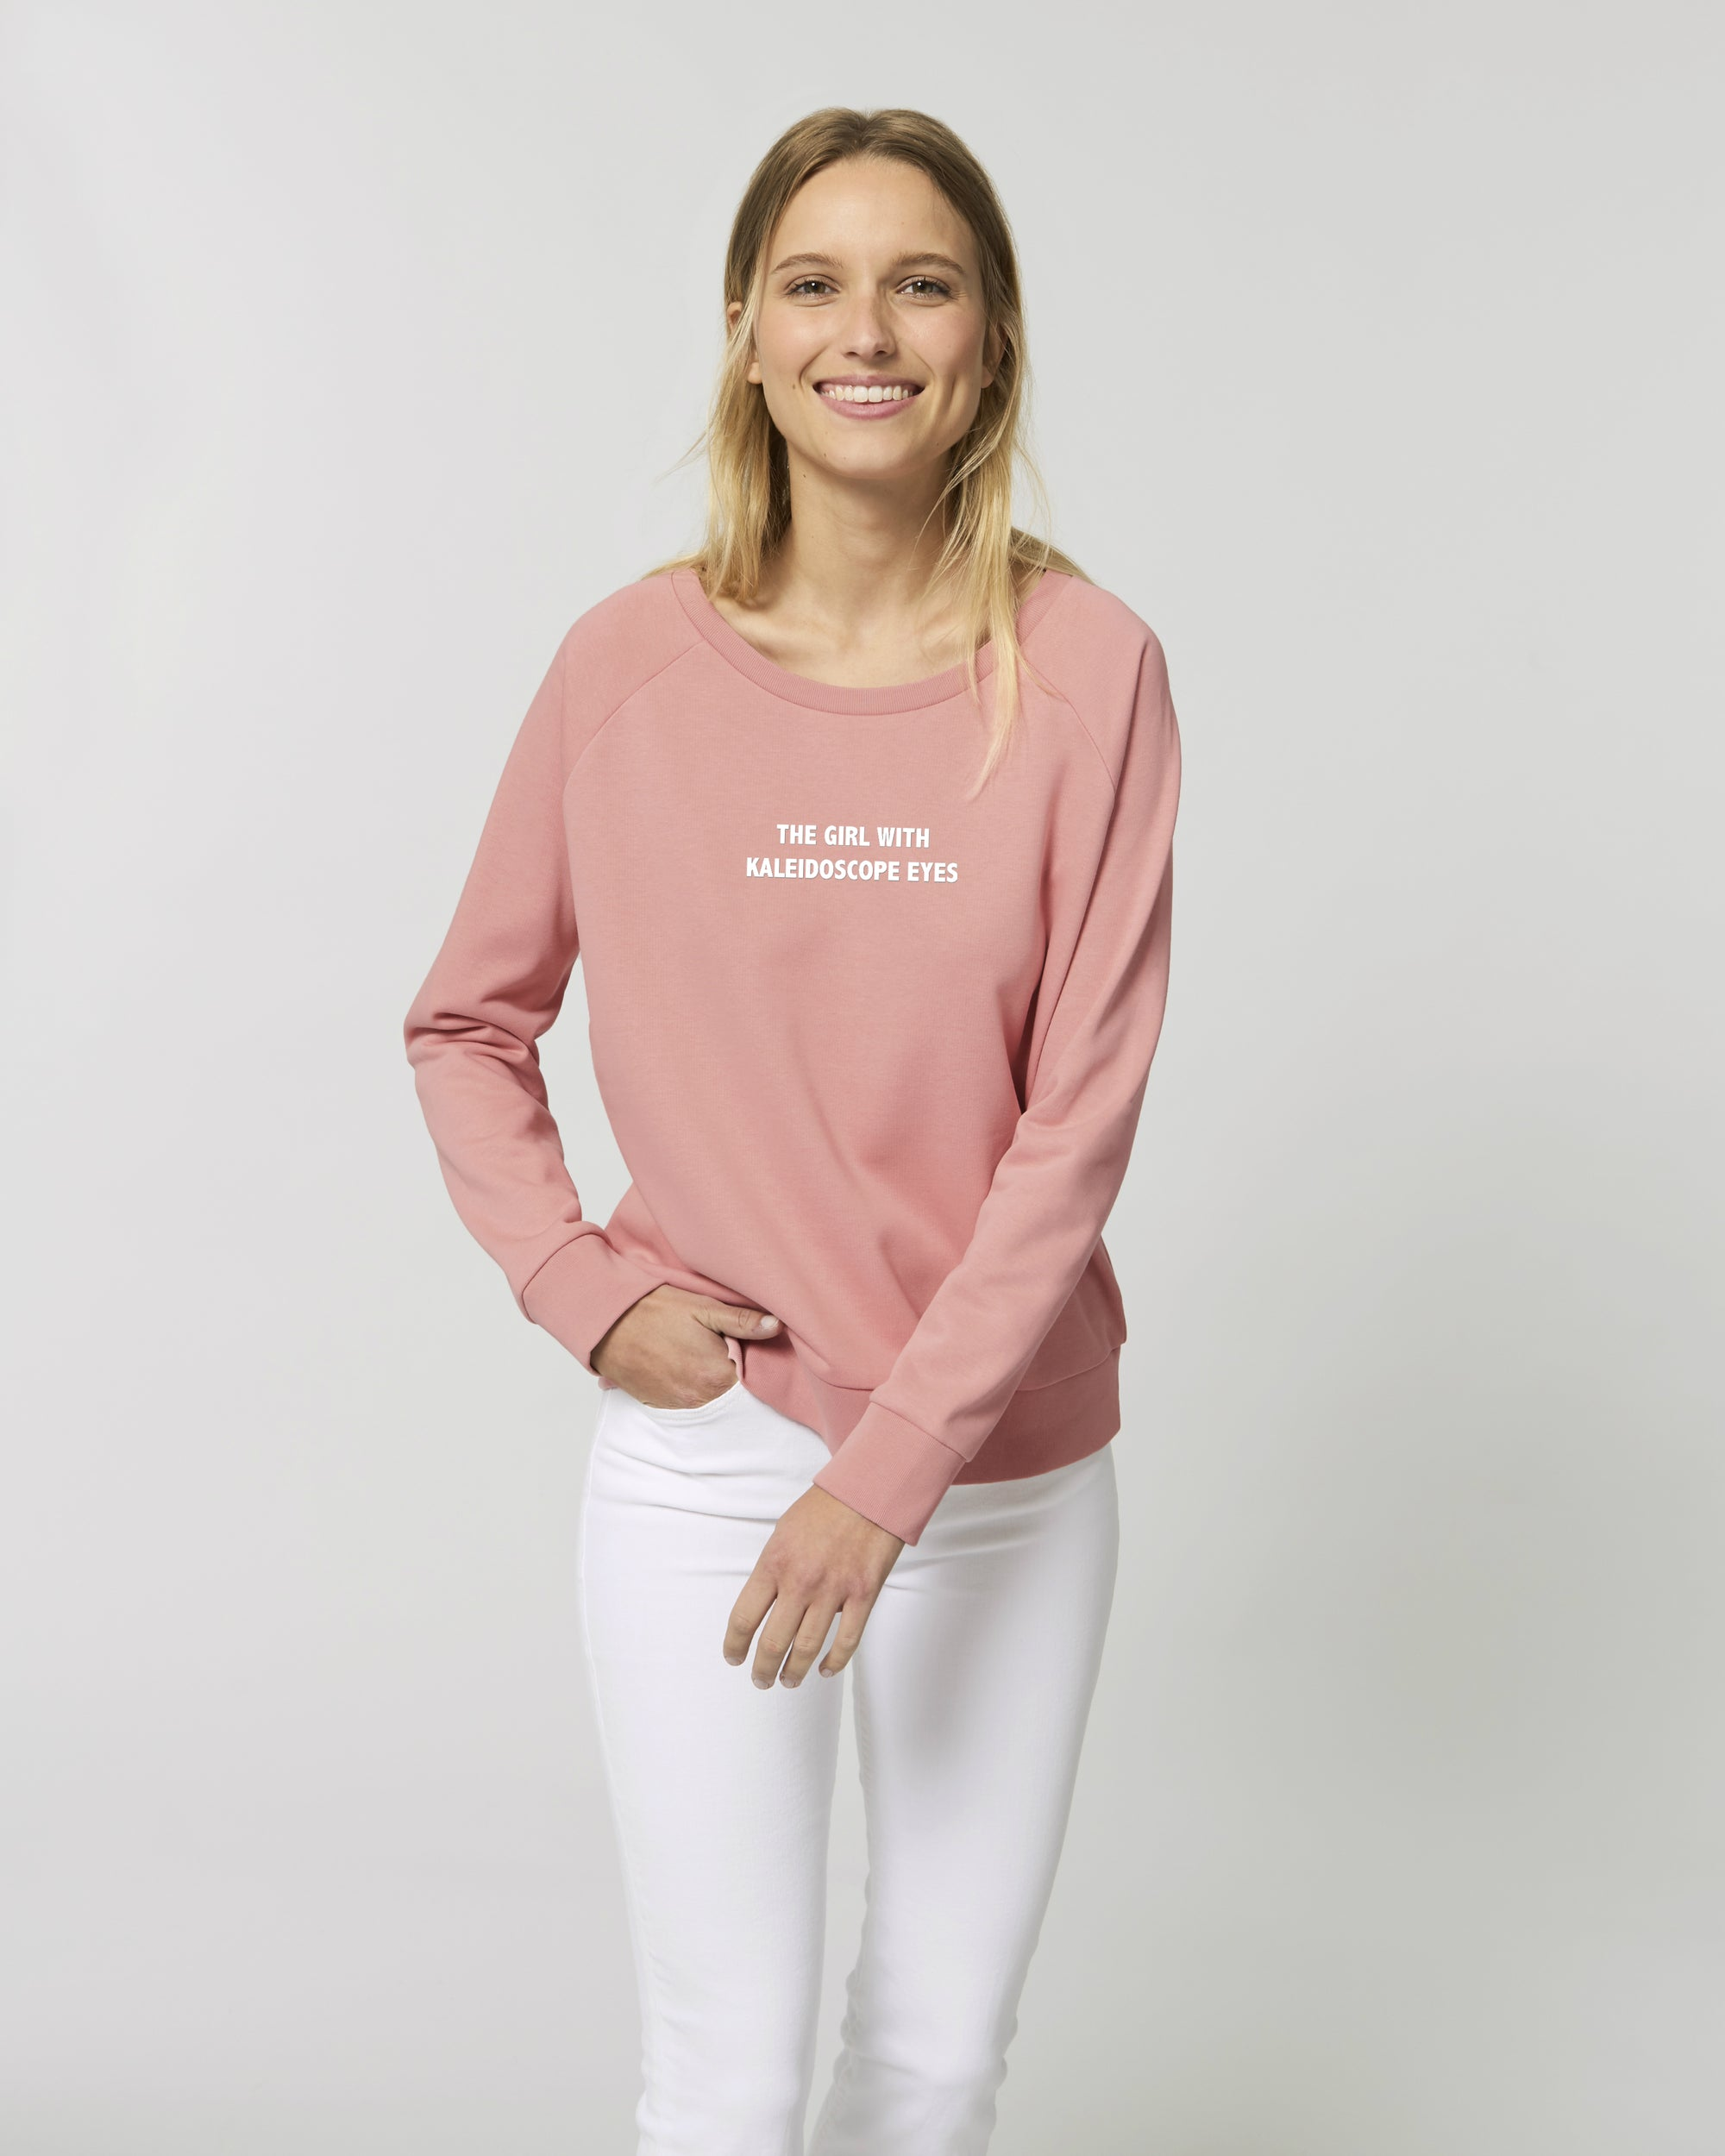 'THE GIRL WITH KALEIDOSCOPE EYES' EMBROIDERED WOMEN'S RELAXED FIT ORGANIC COTTON SWEATSHIRT